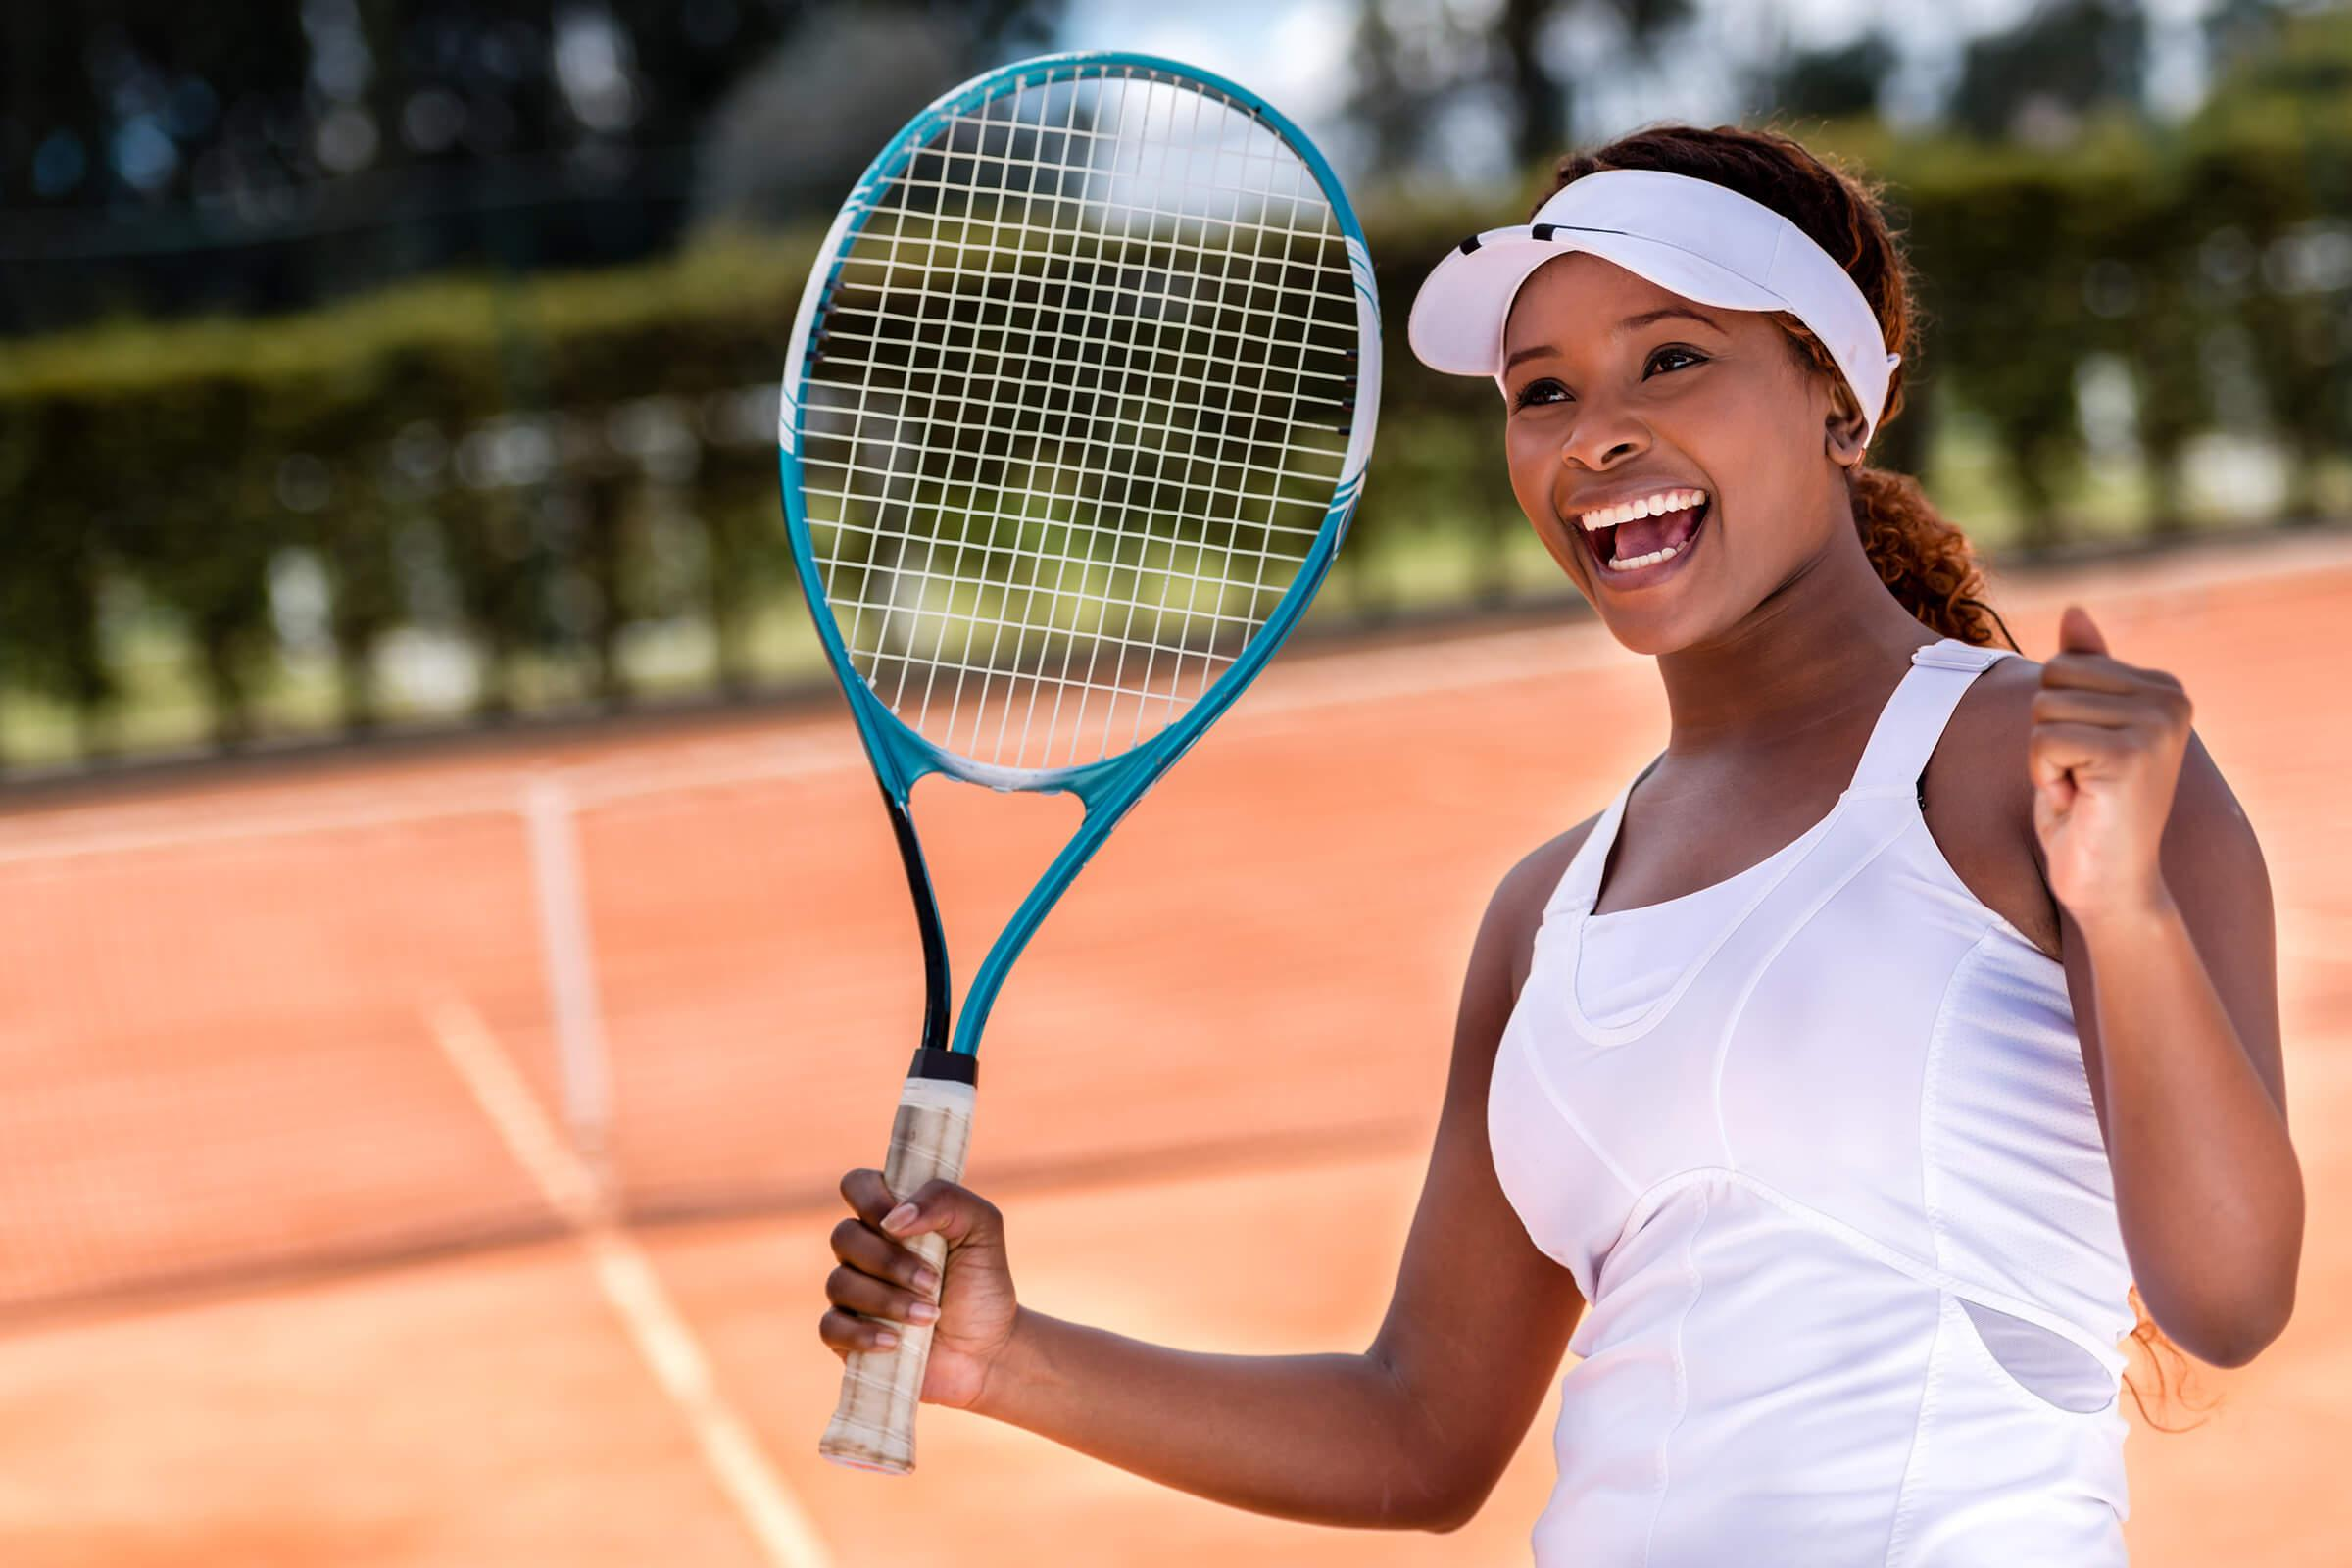 a woman is smiling while holding a racket on a court